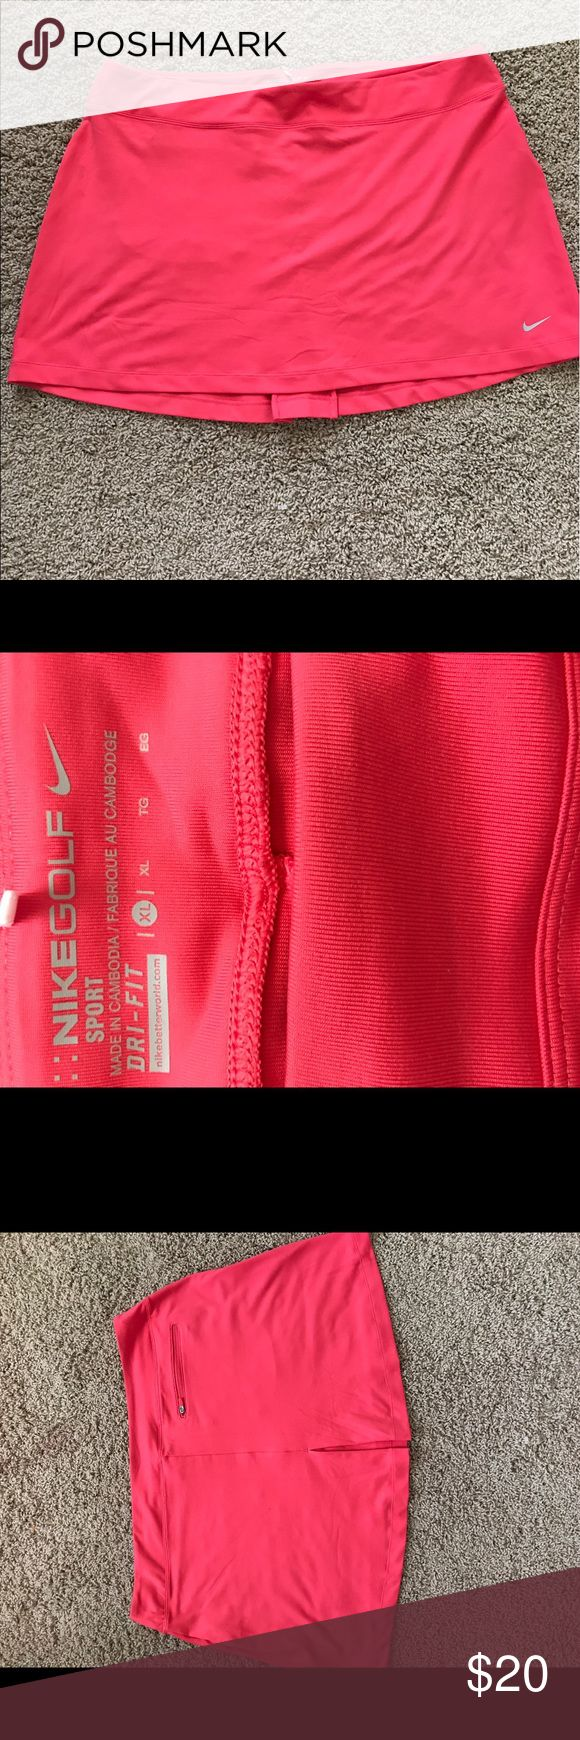 Nike skirt coral red XL In excellent used condition. Size XL Skirts Mini